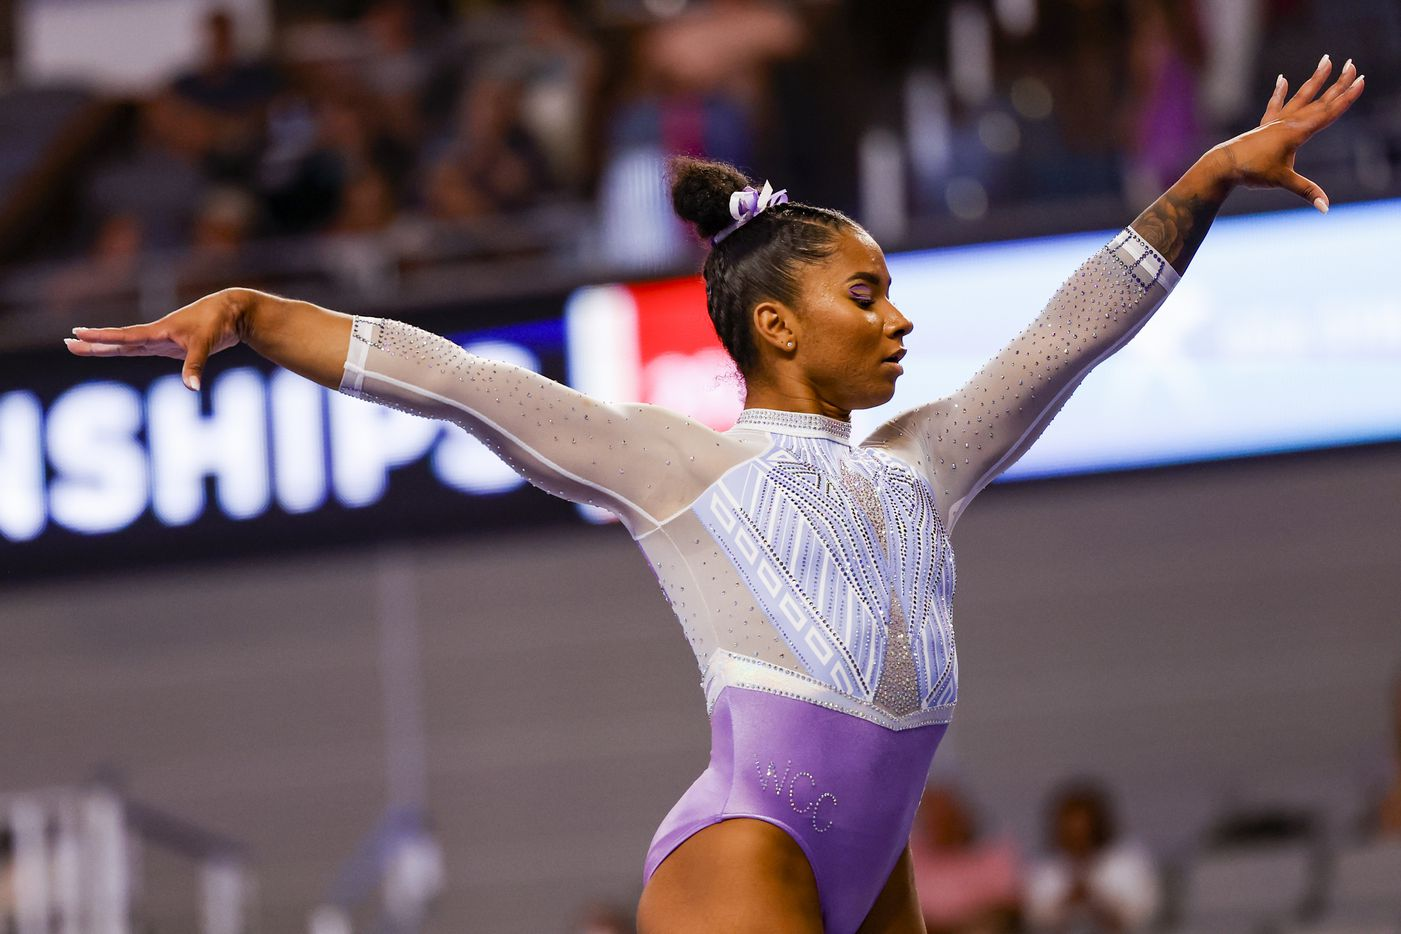 Jordan Chiles performs on the balance beam during day 1 of the senior women's US gymnastics championships on Friday, June 4, 2021, at Dickies Arena in Fort Worth. (Juan Figueroa/The Dallas Morning News)